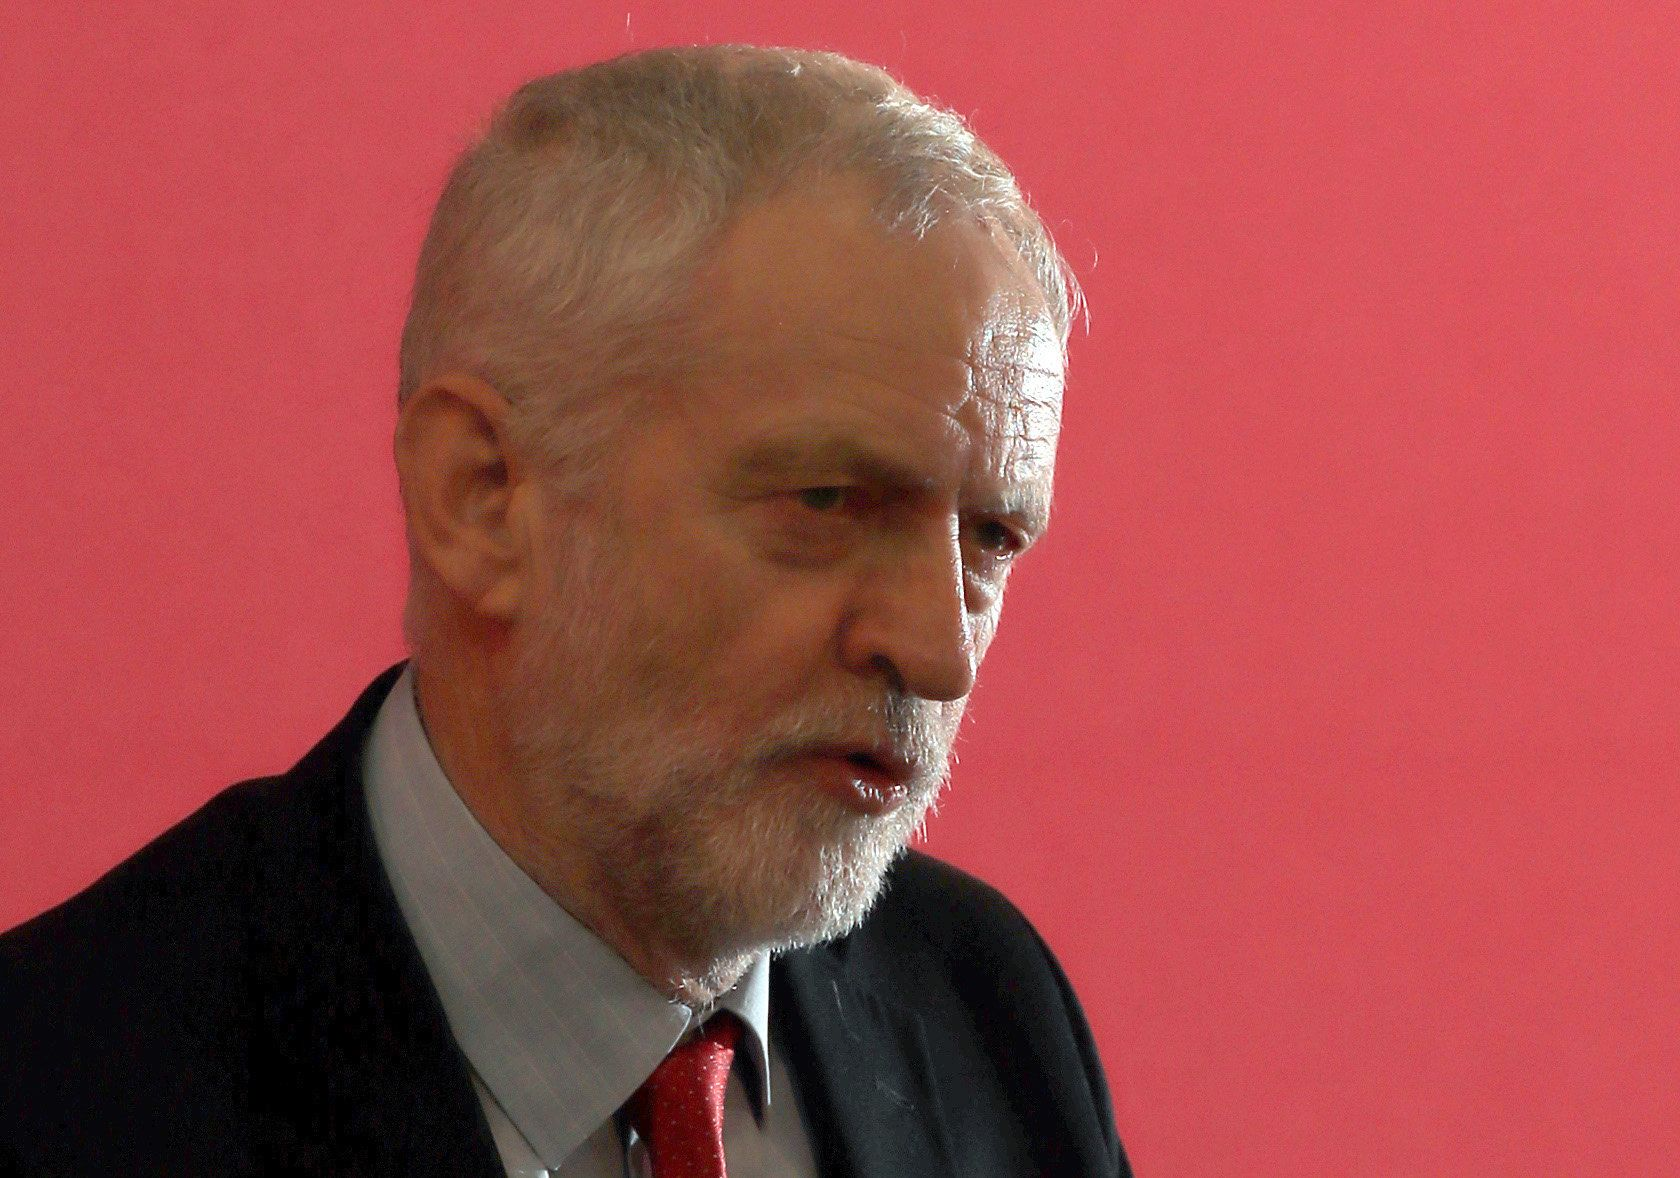 UK Labour faces fresh turbulence over anti-Semitism row